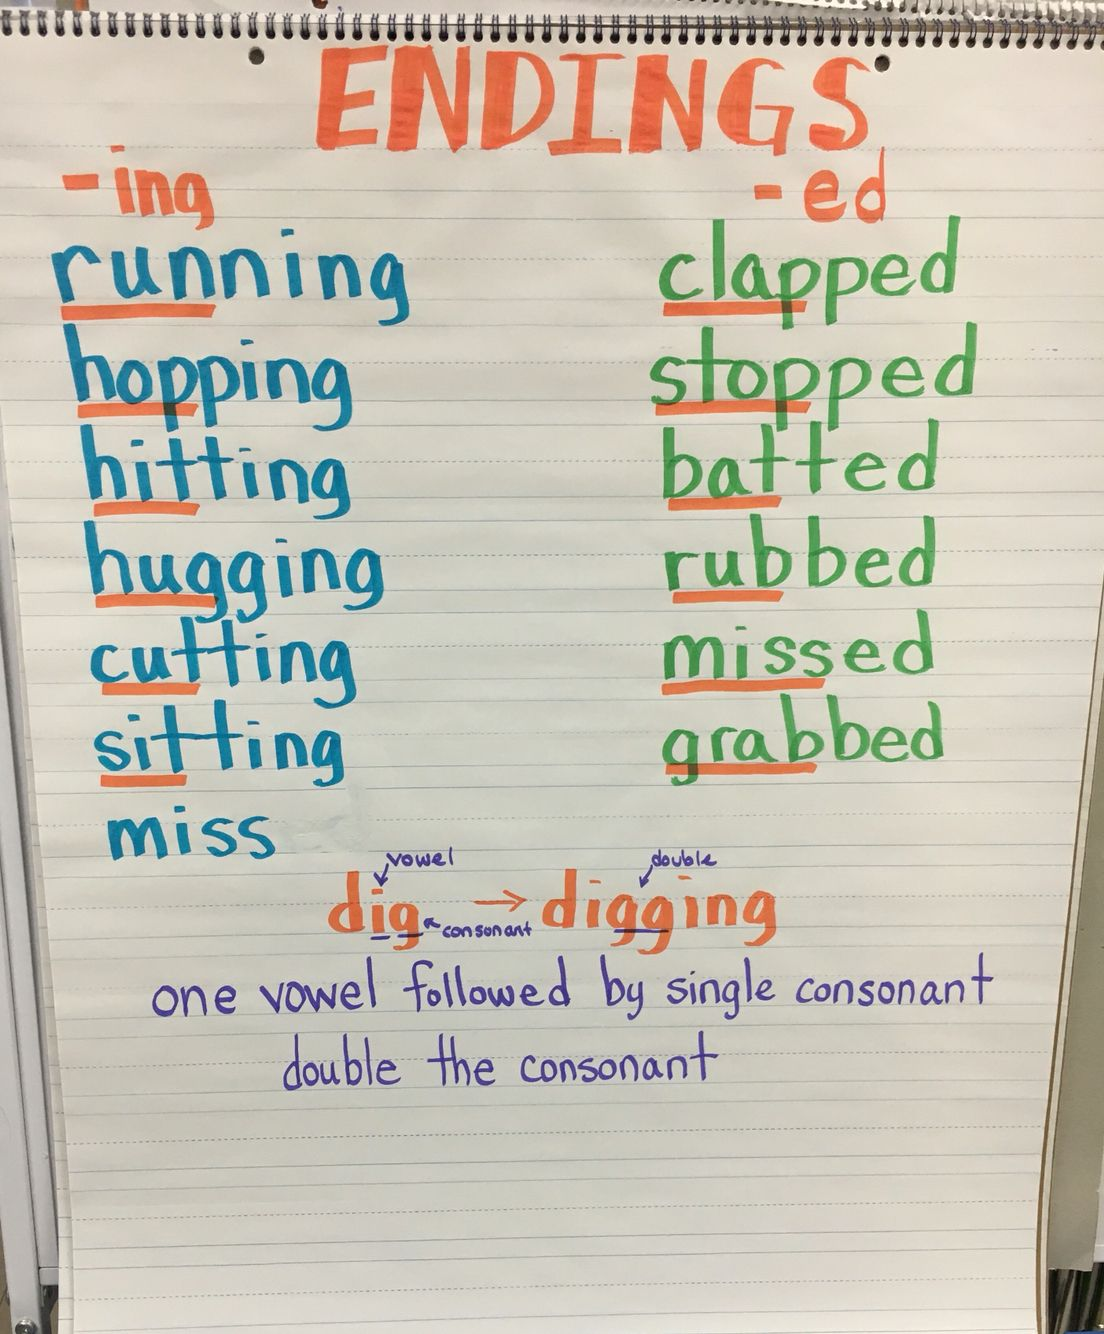 Ed And Ing Endings Suffixes When To Double The Consonant Anchor Chart